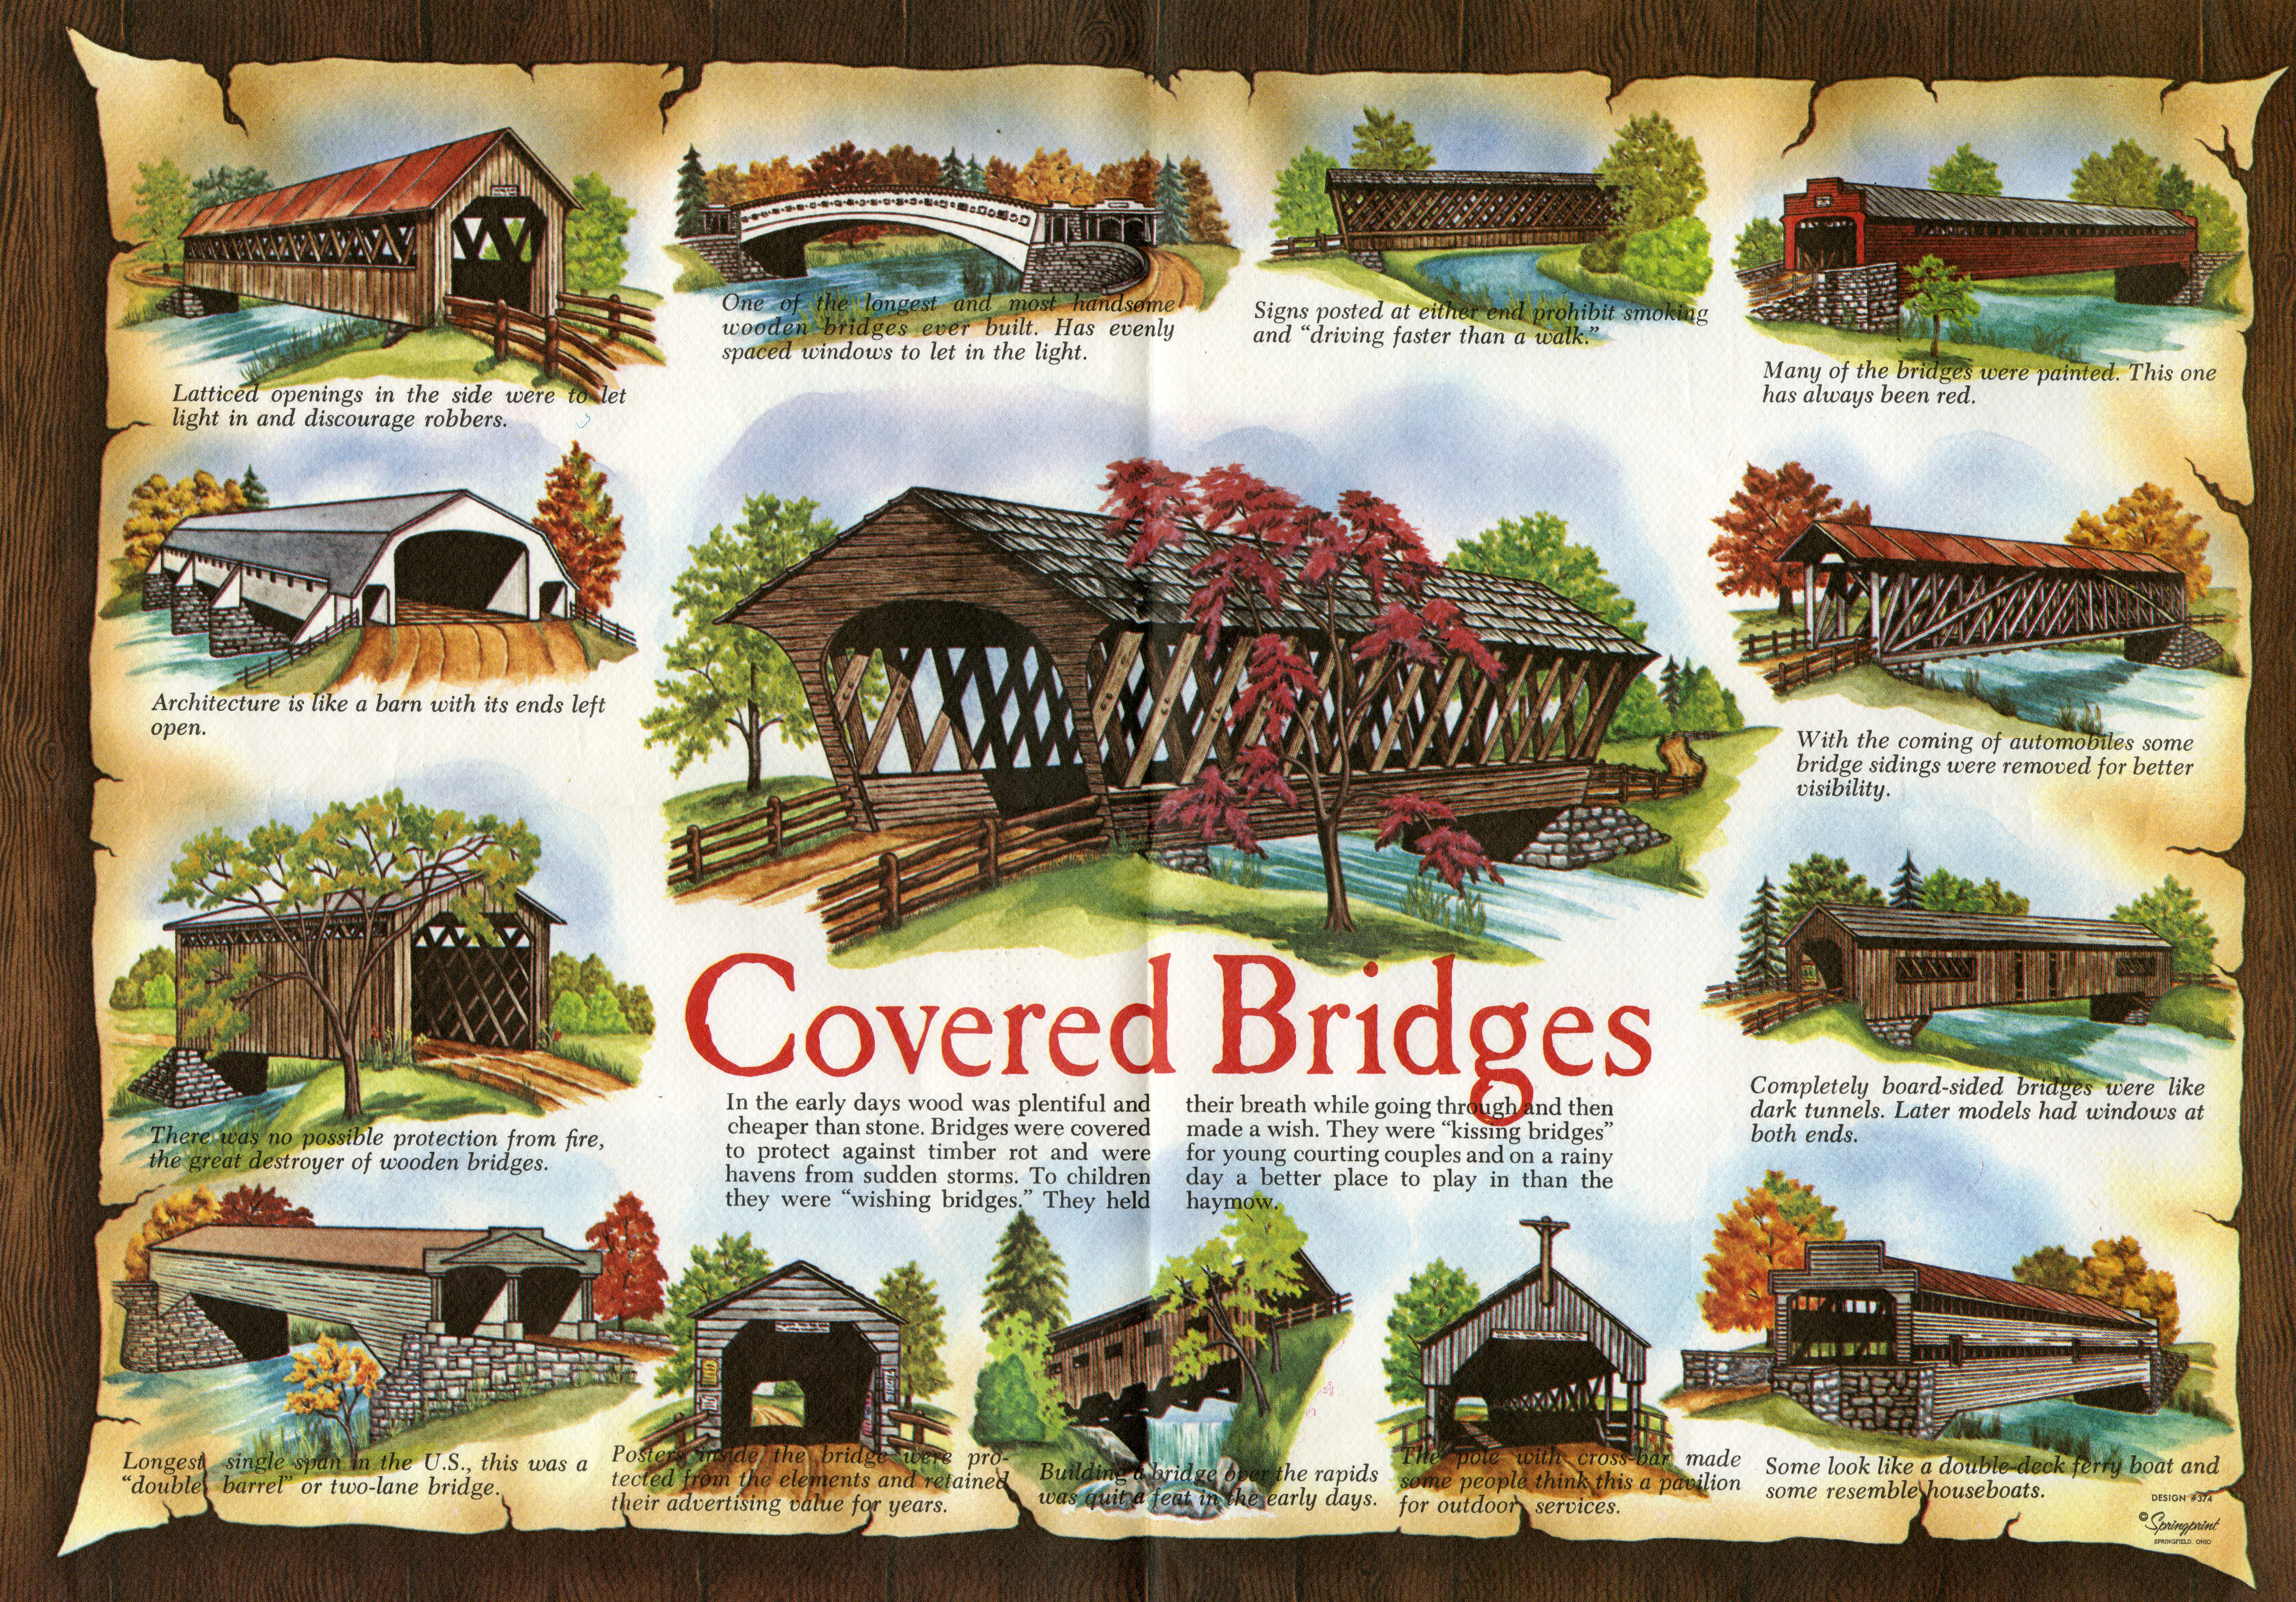 Placemat depicting views of covered bridges, circa 1960s.